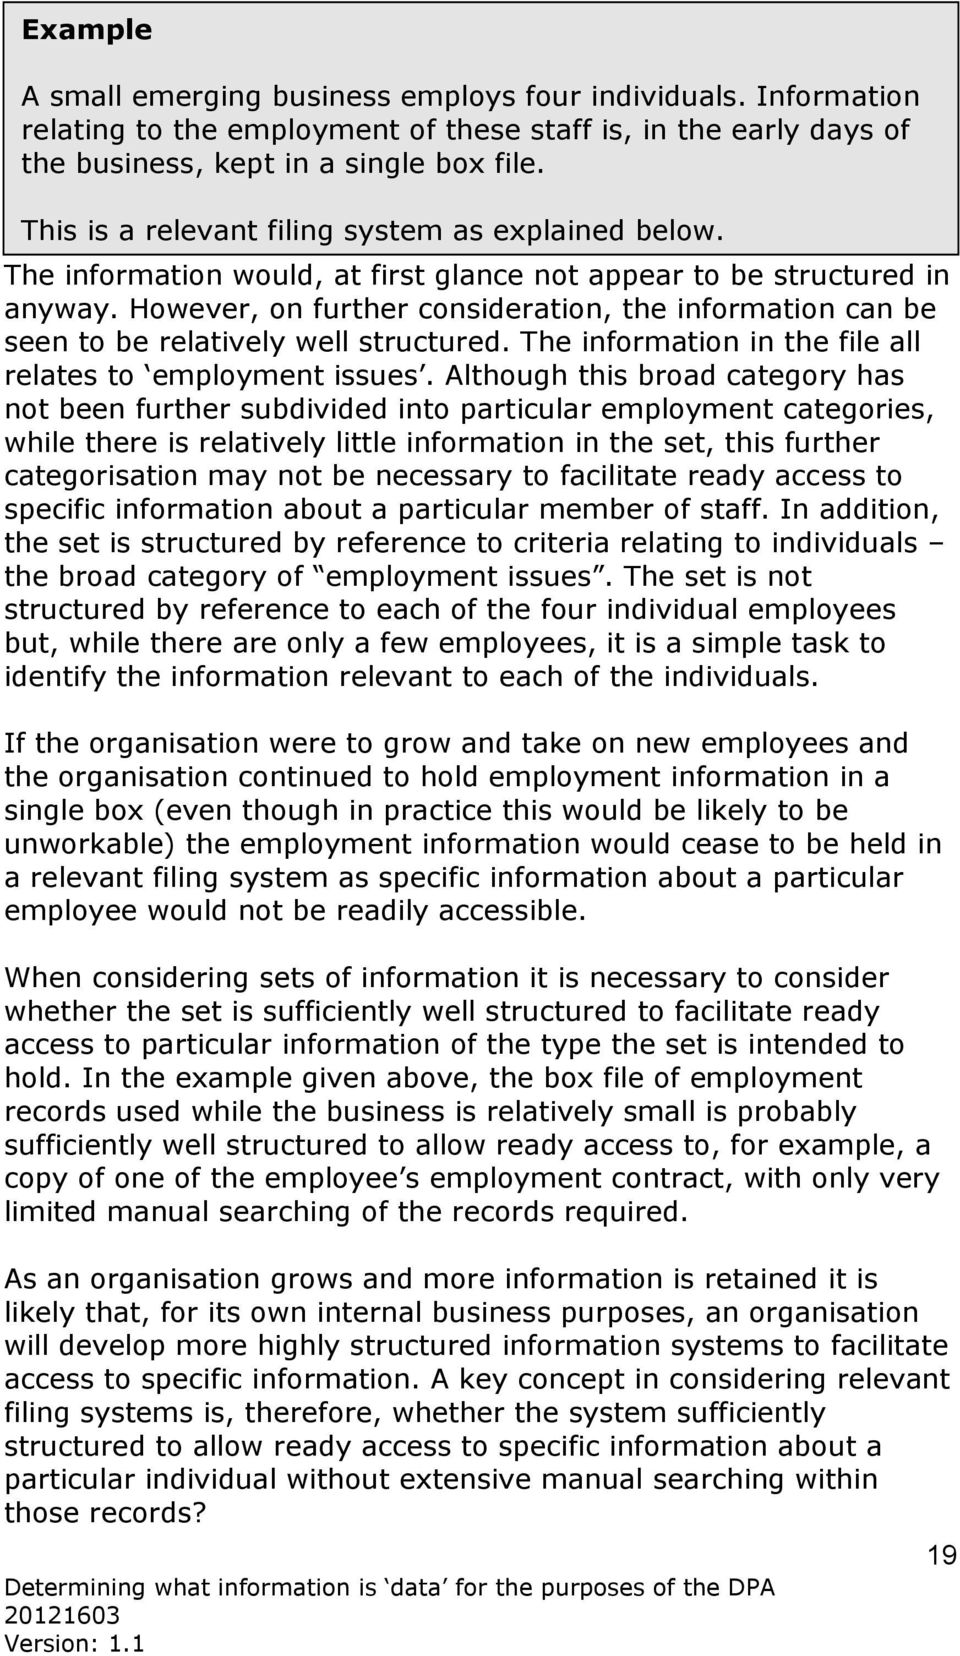 However, on further consideration, the information can be seen to be relatively well structured. The information in the file all relates to employment issues.